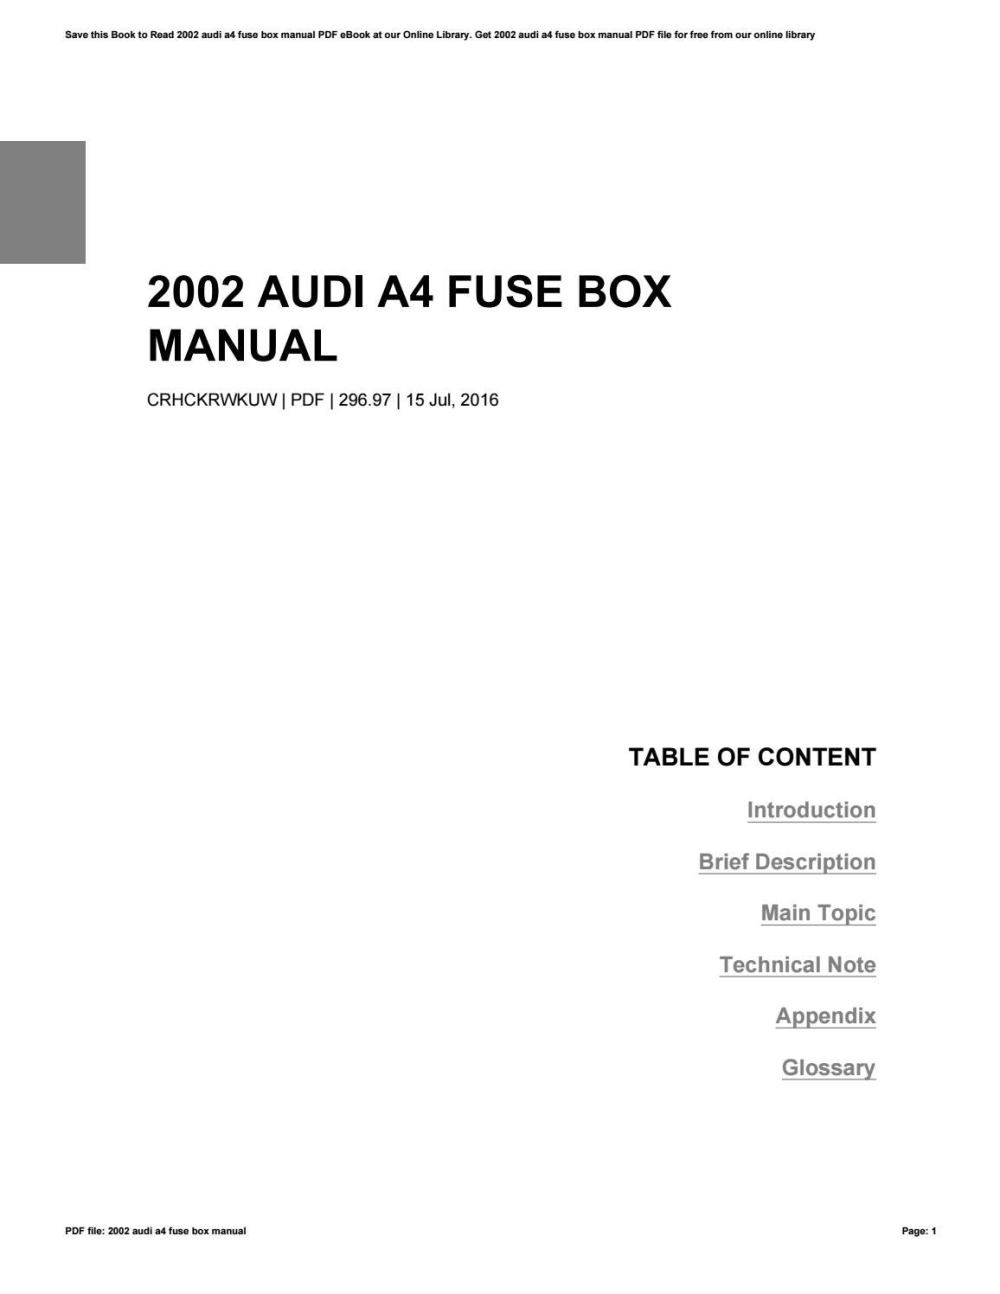 medium resolution of fuse box in audi a4 2002